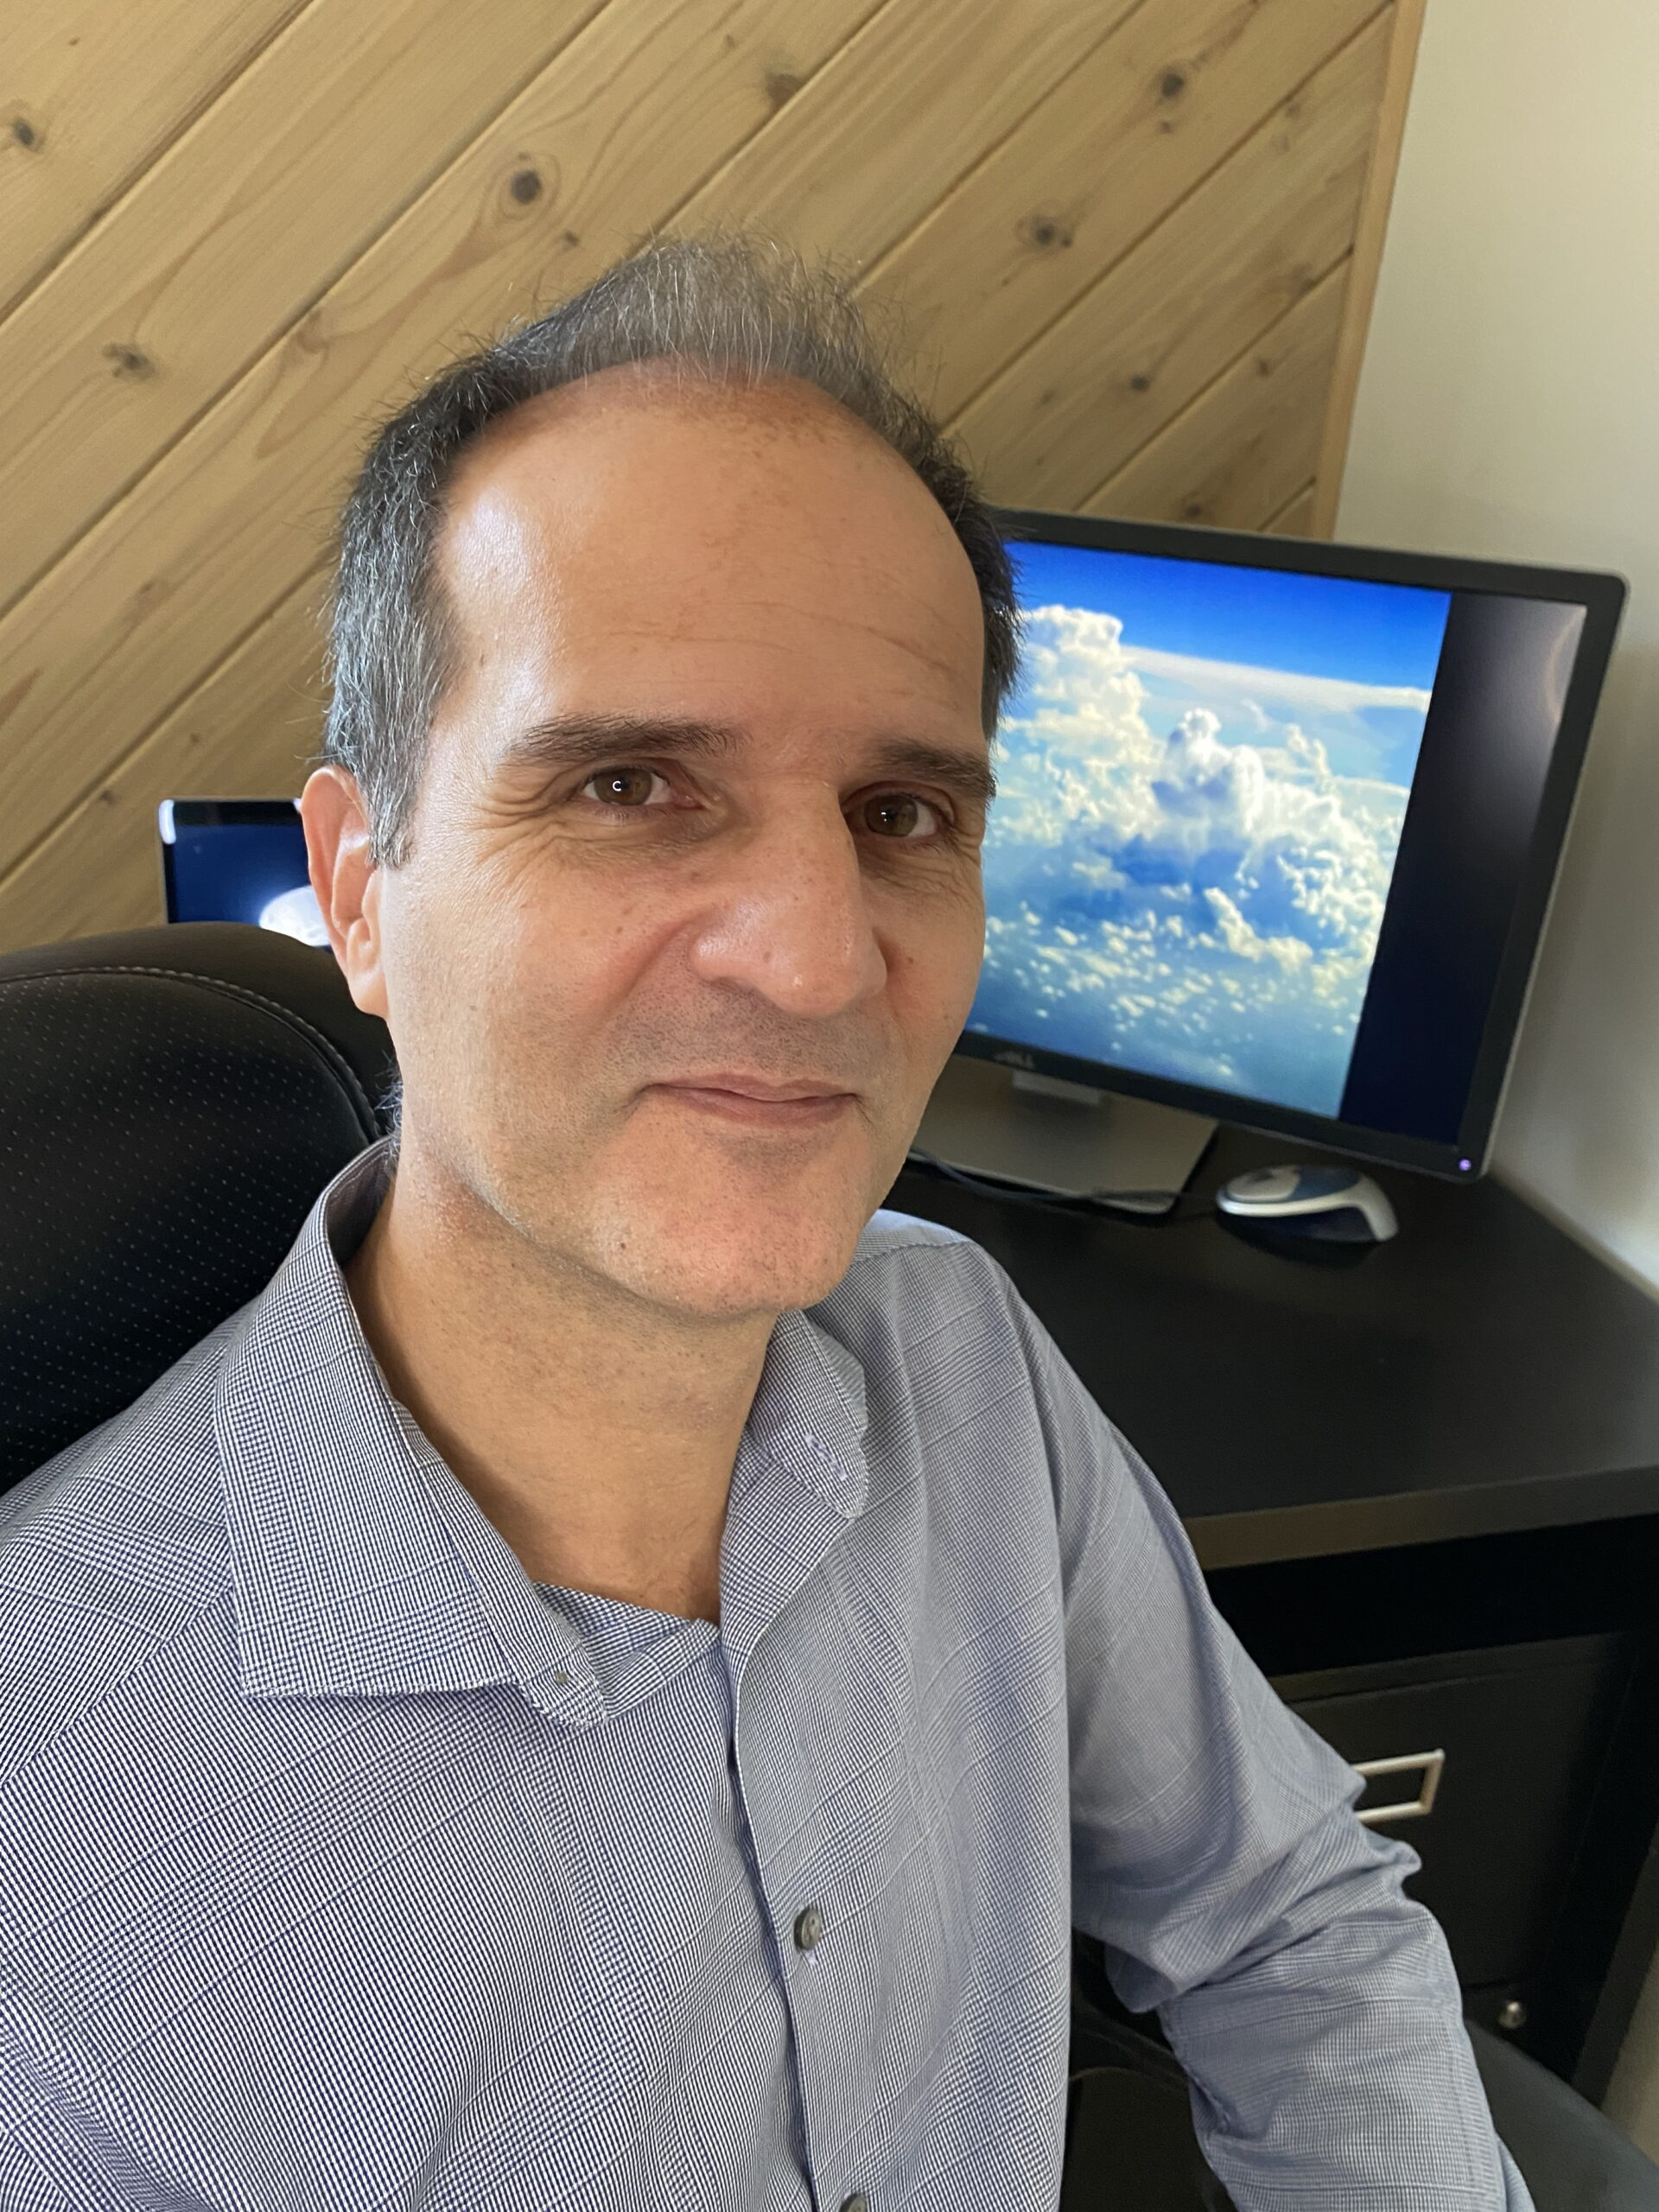 Dr. Kollias sits in his home office, smiling at the camera, and wearing a blue button-down shirt